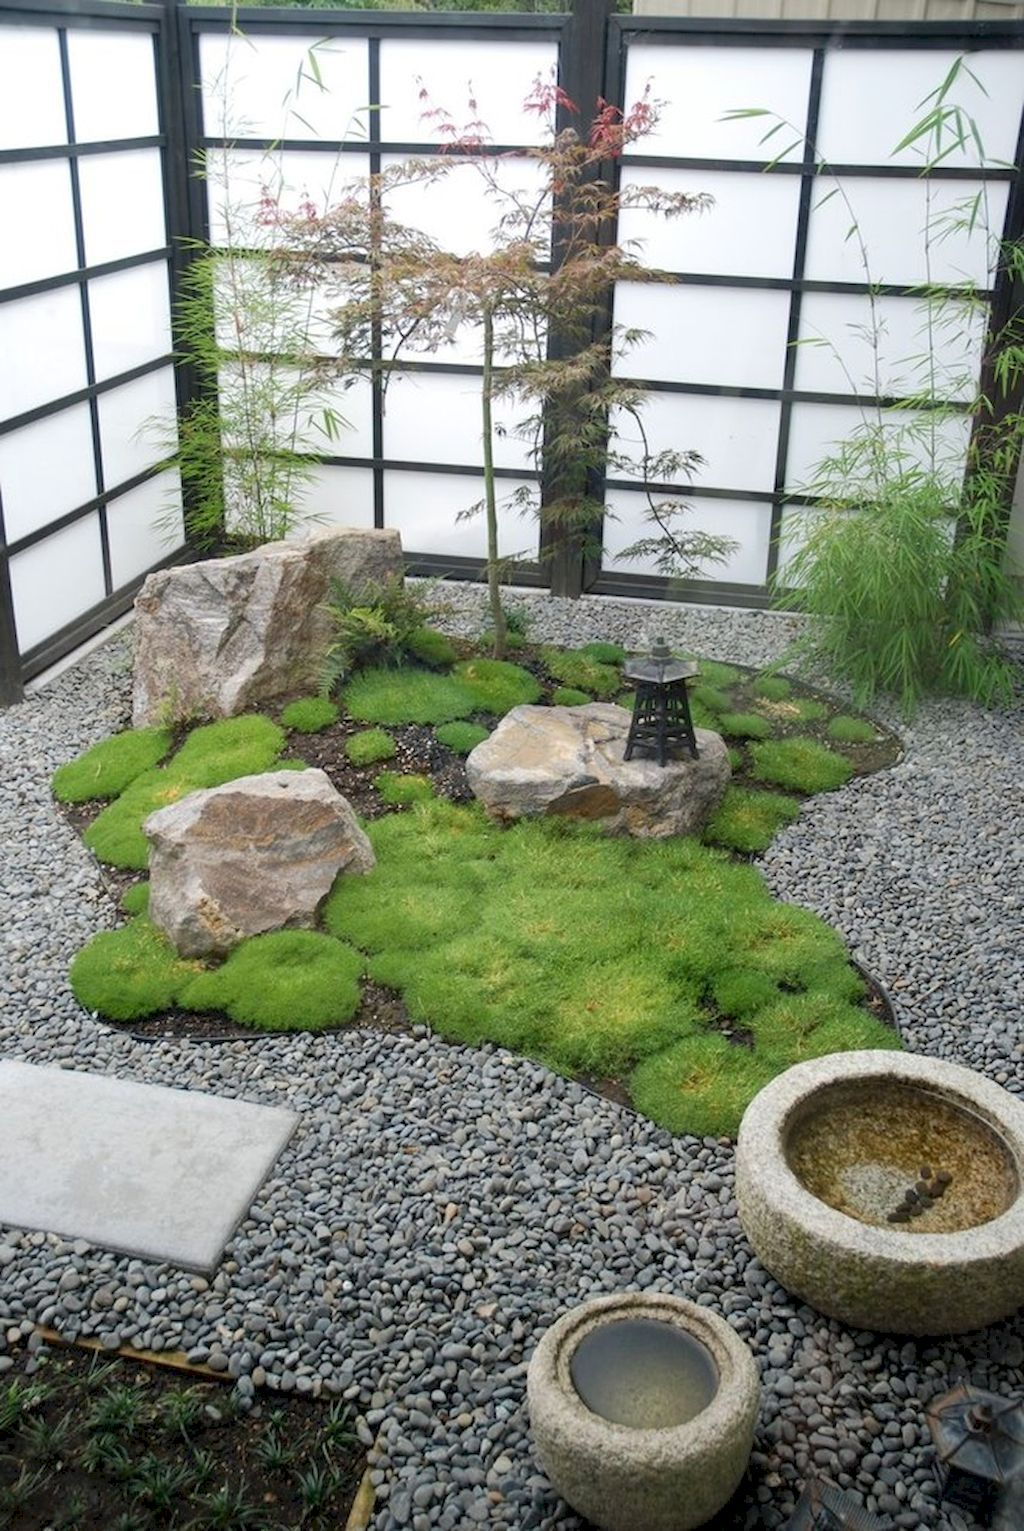 30 Simple & Modern Rock Garden Design Ideas Front Yard | Rock garden on small japanese garden designs, simple teapot designs, simple japanese garden designs,